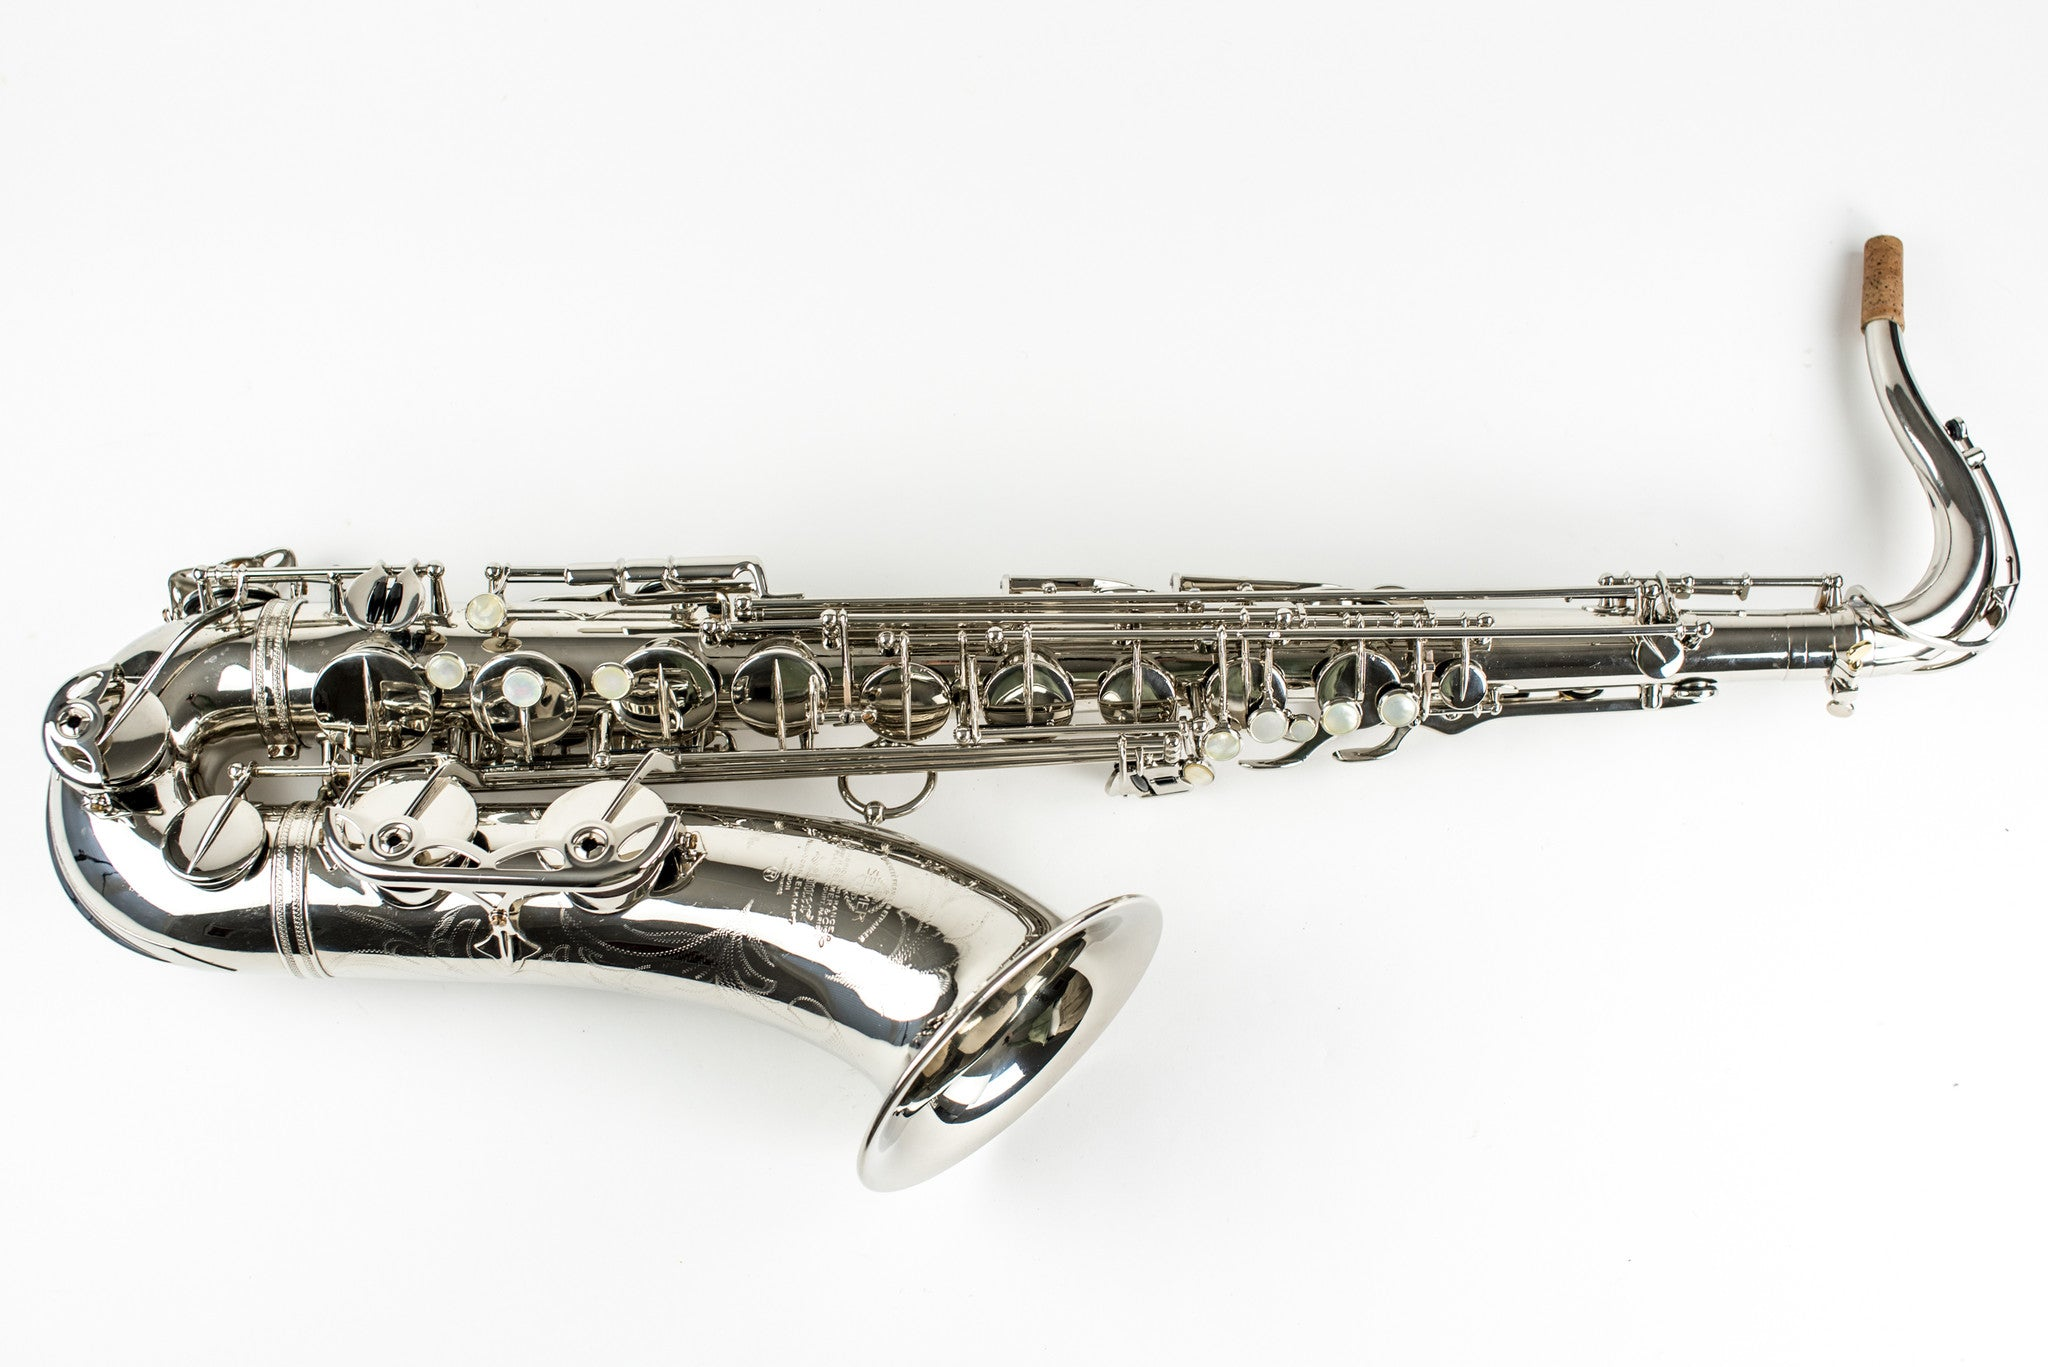 1957 Selmer Mark VI Tenor Saxophone 69,xxx, Fresh Overhaul